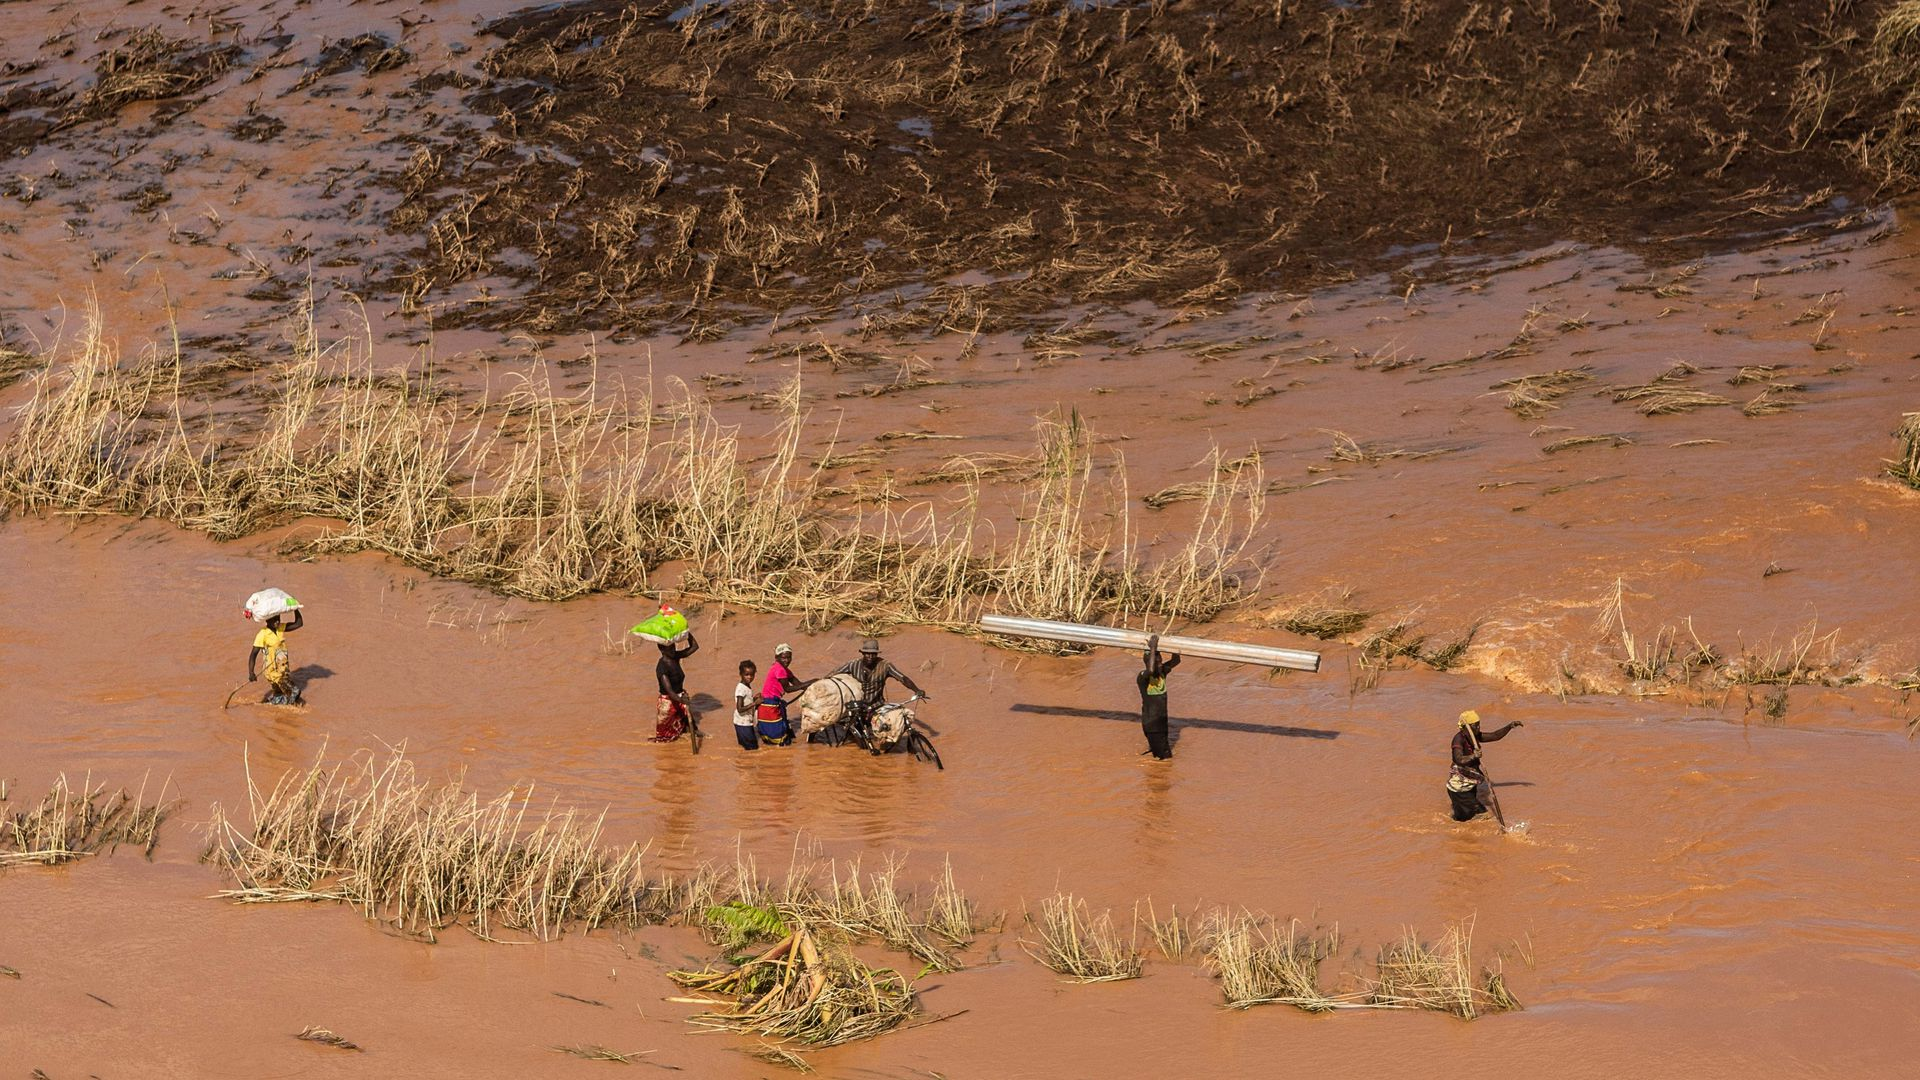 people wading through floodwaters in Mozambique